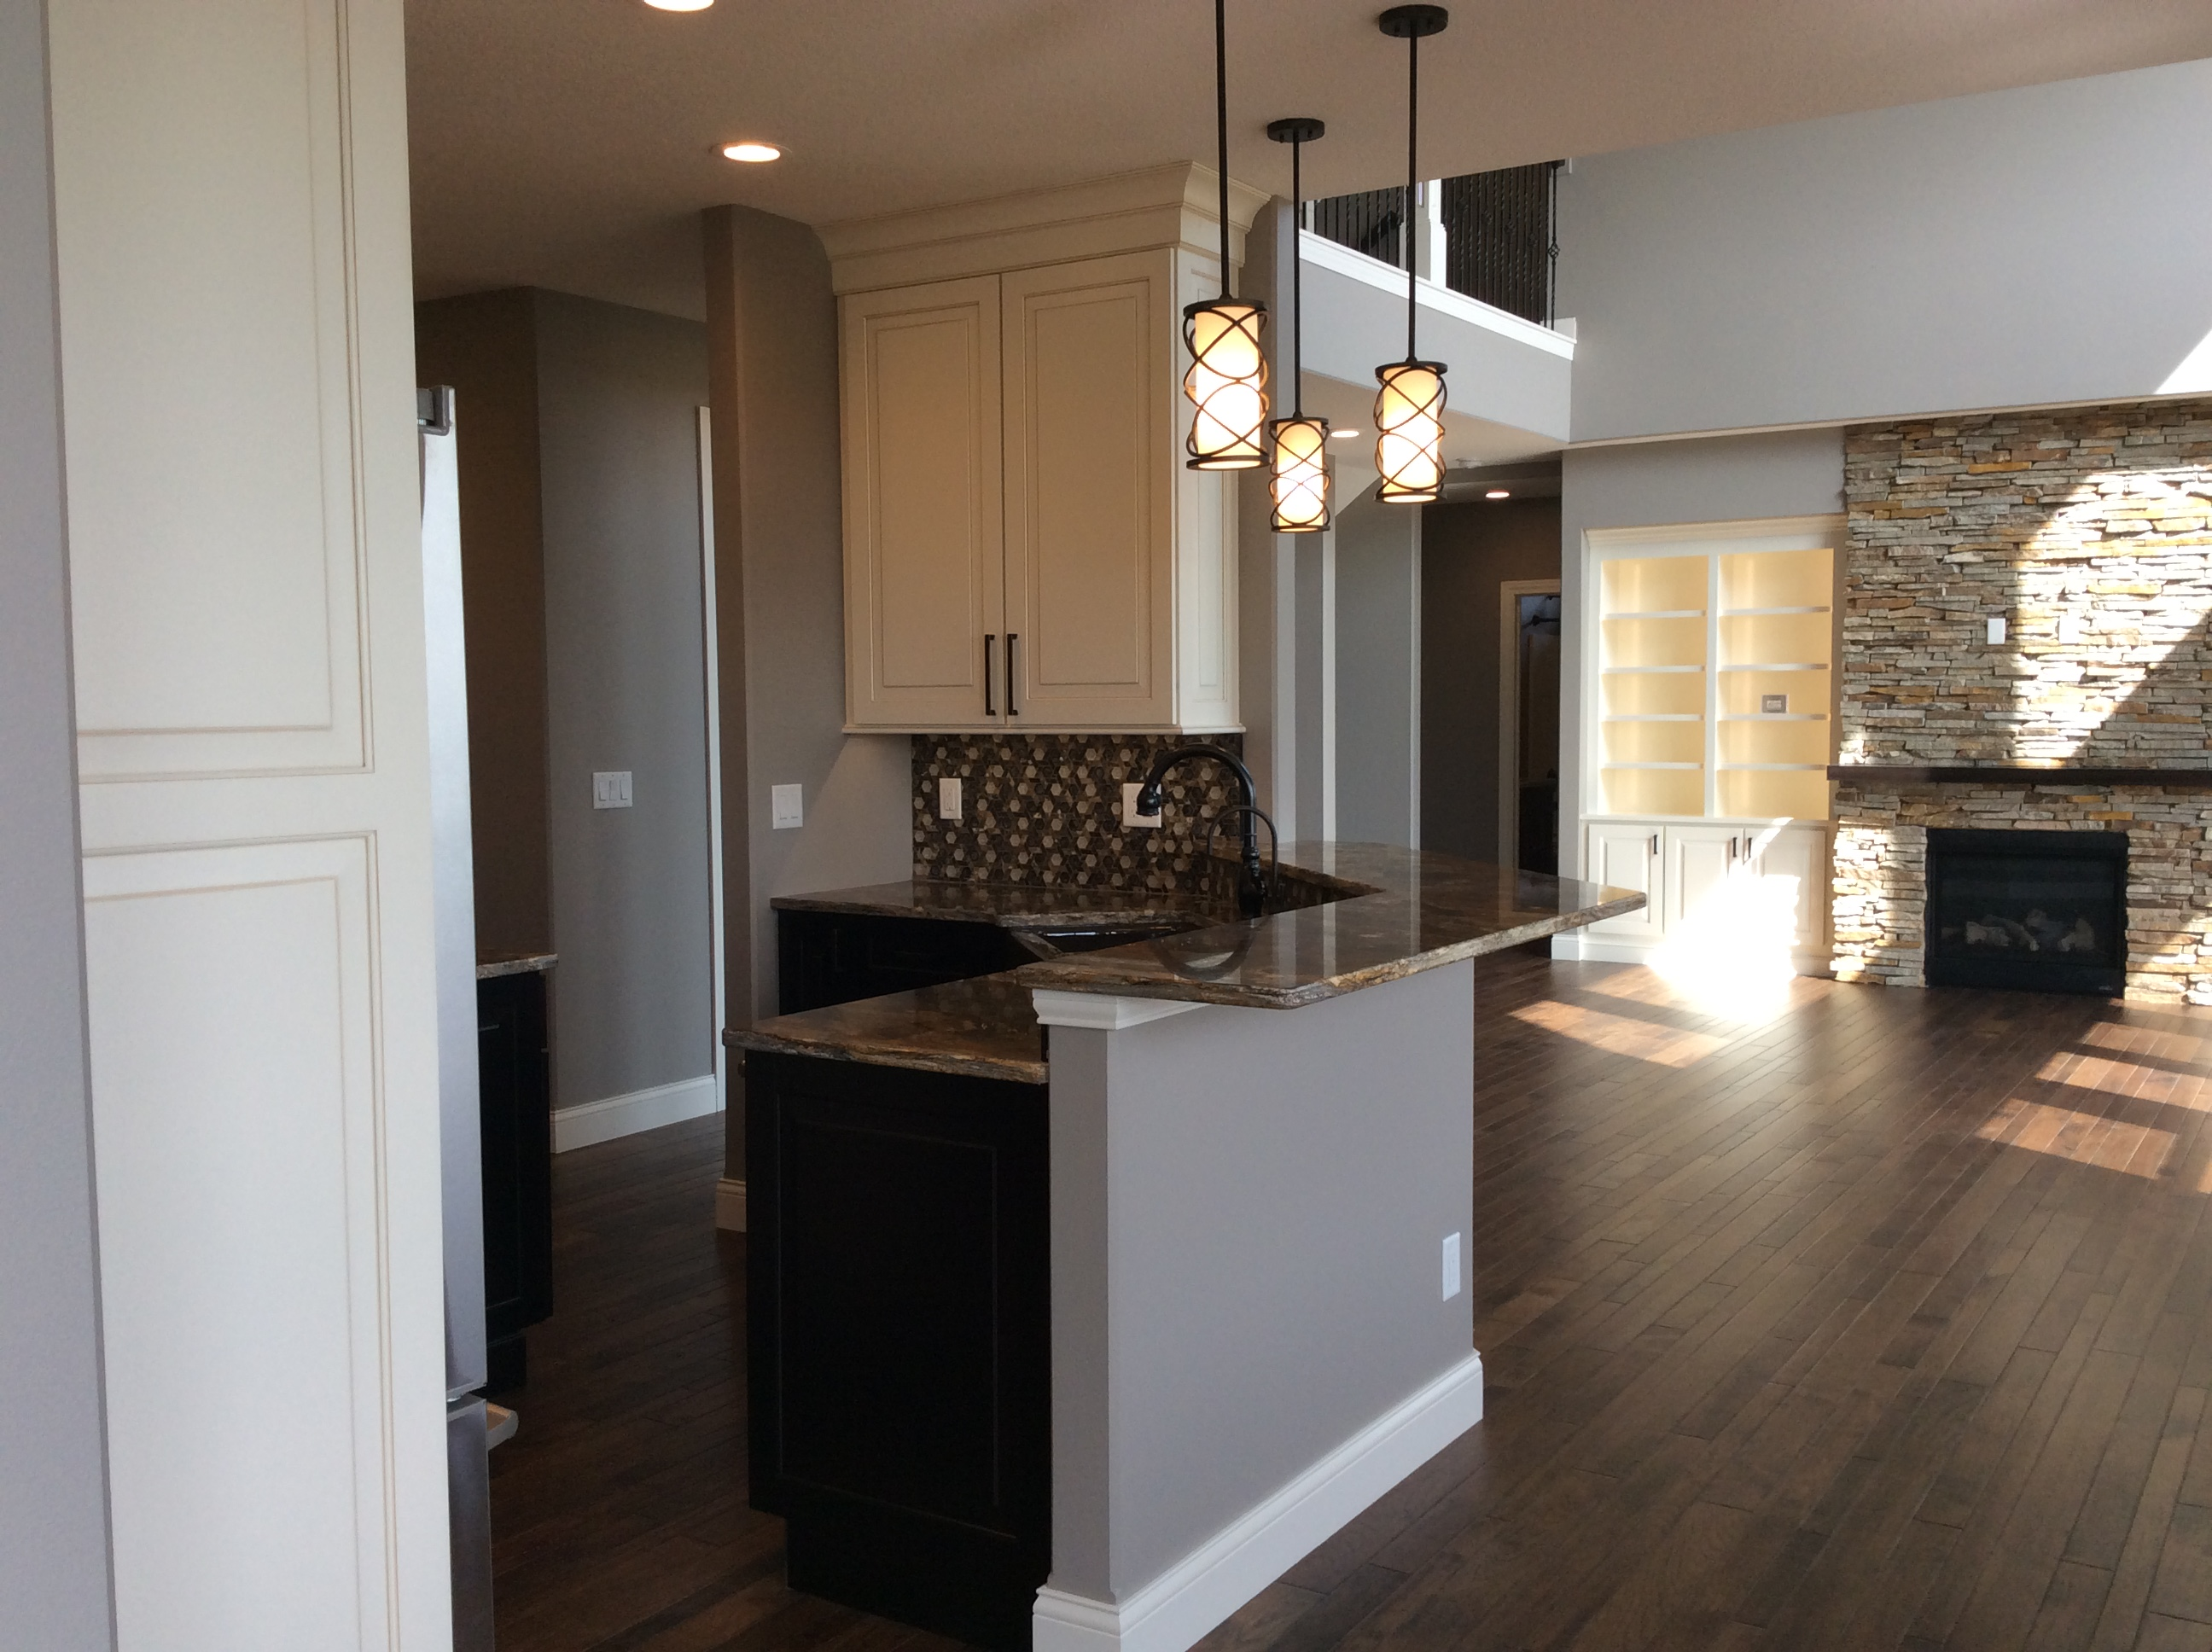 Kitchen and wet bar cabinets coralville - Wet bar cabinets ...